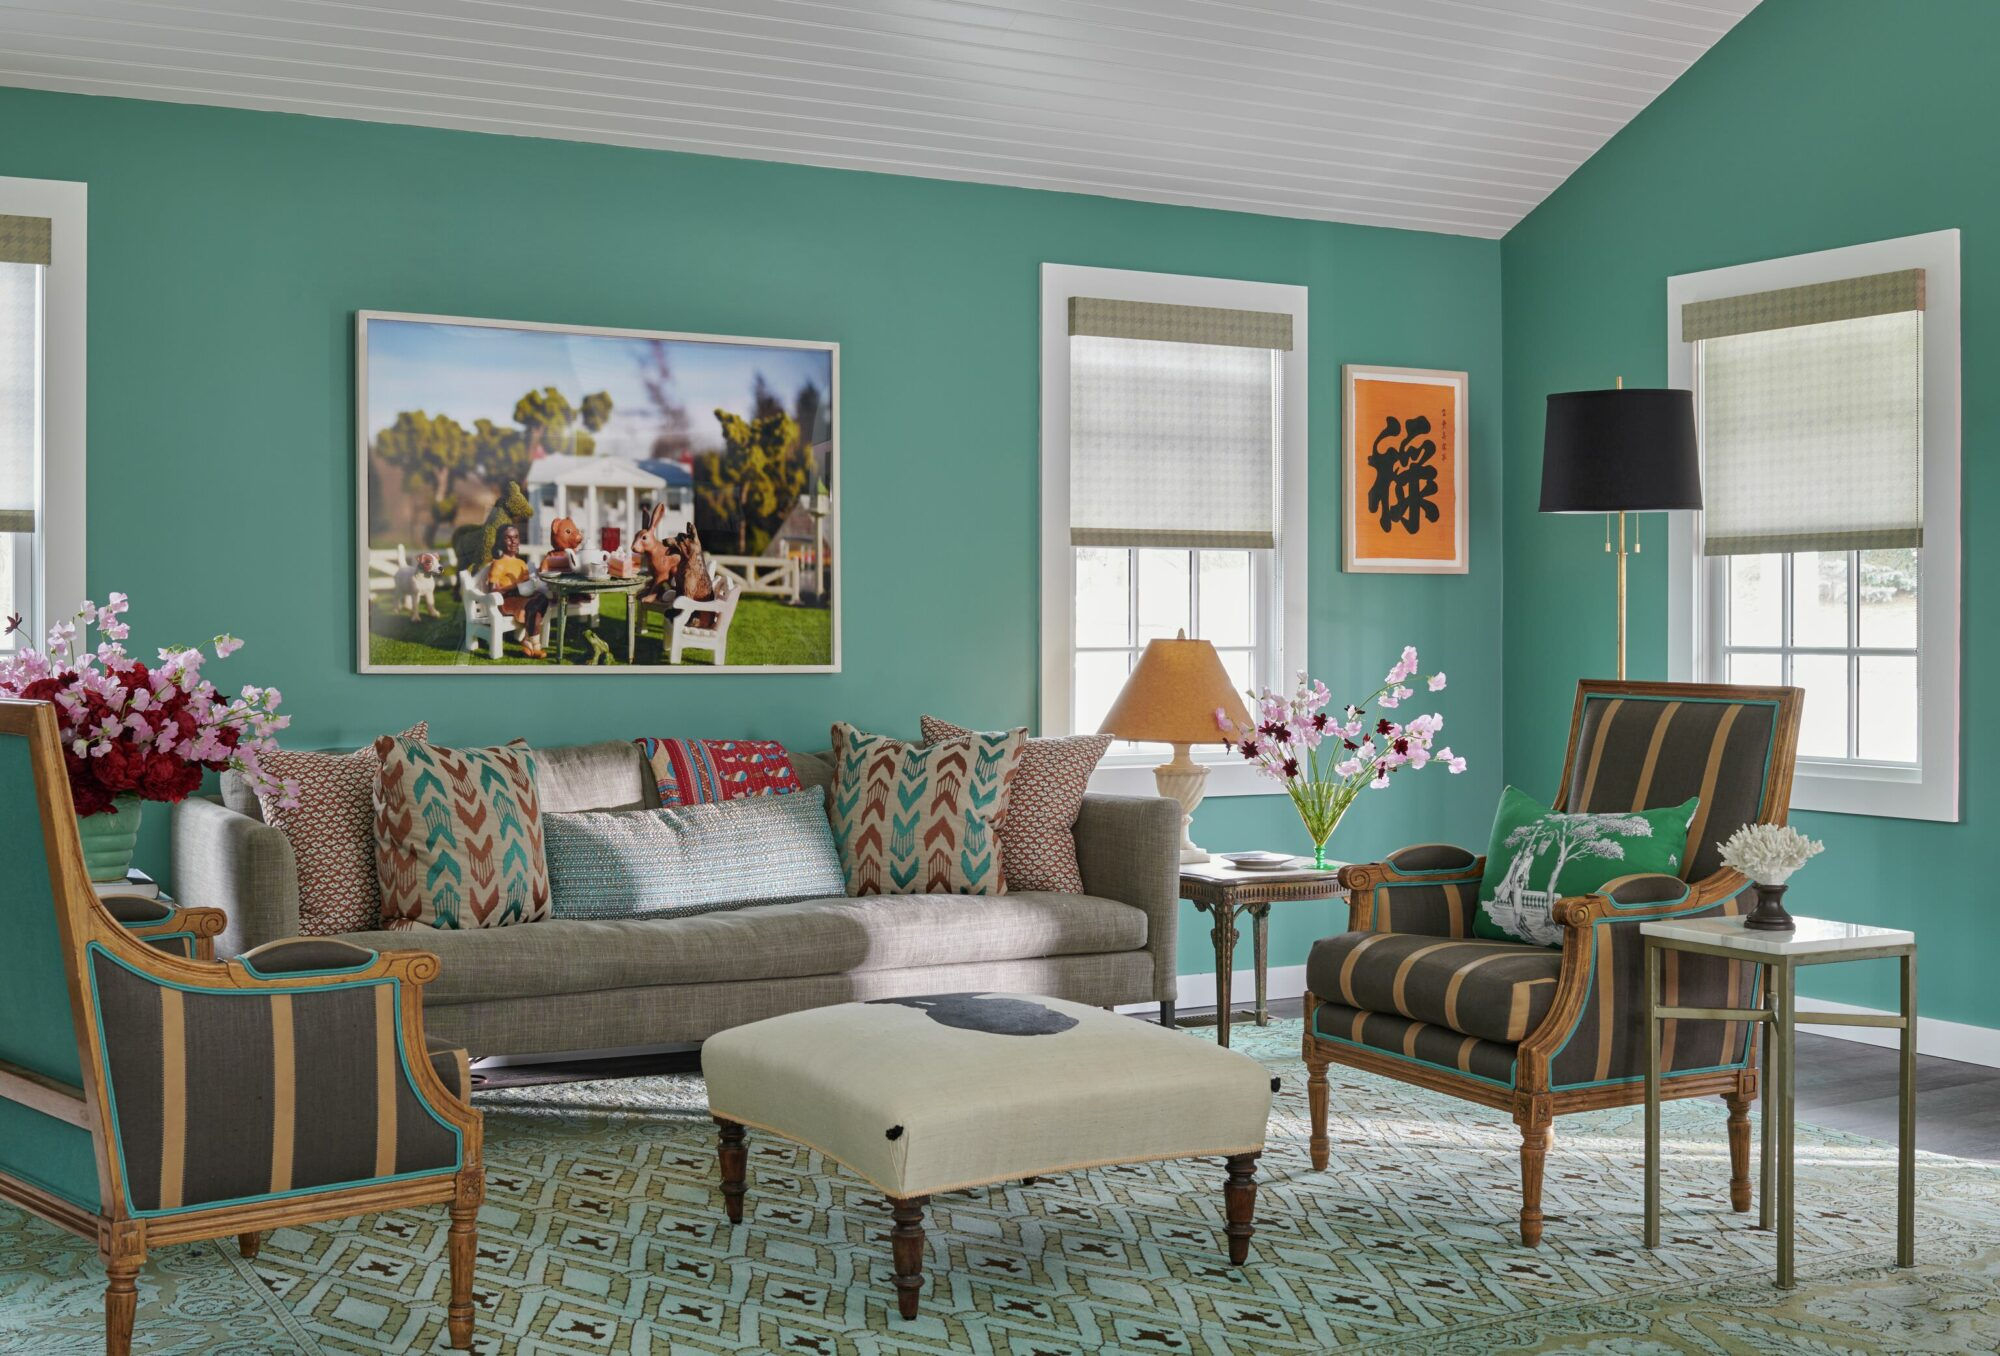 Now You Can Deck Your Windows In Harlem Toile De Jouy {Now You Can Deck Your Windows In Harlem Toile De Jouy} – English